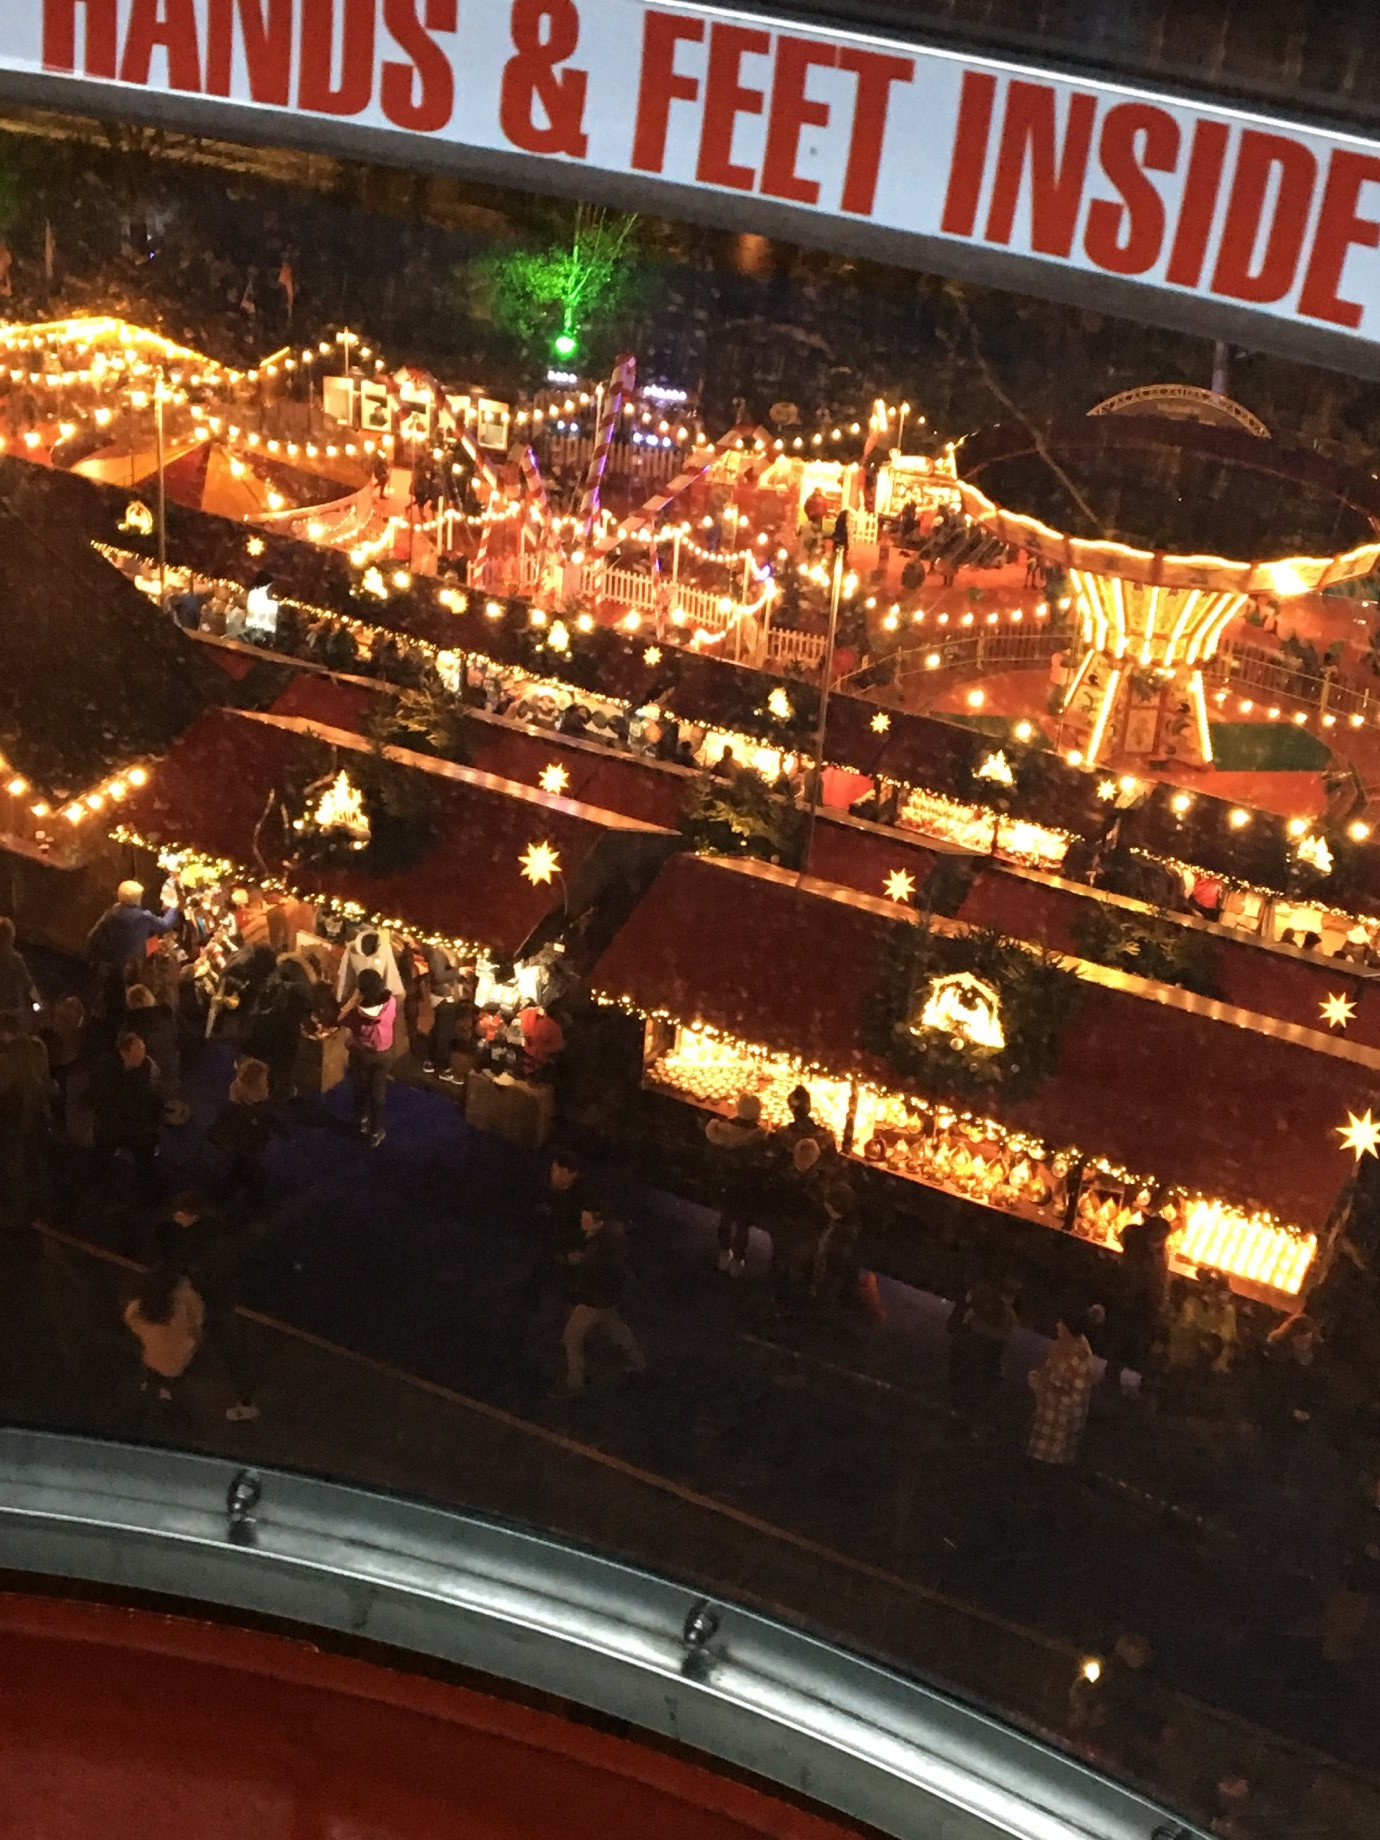 View of Edinburgh's Christmas Market from the Ferris Wheel Pod